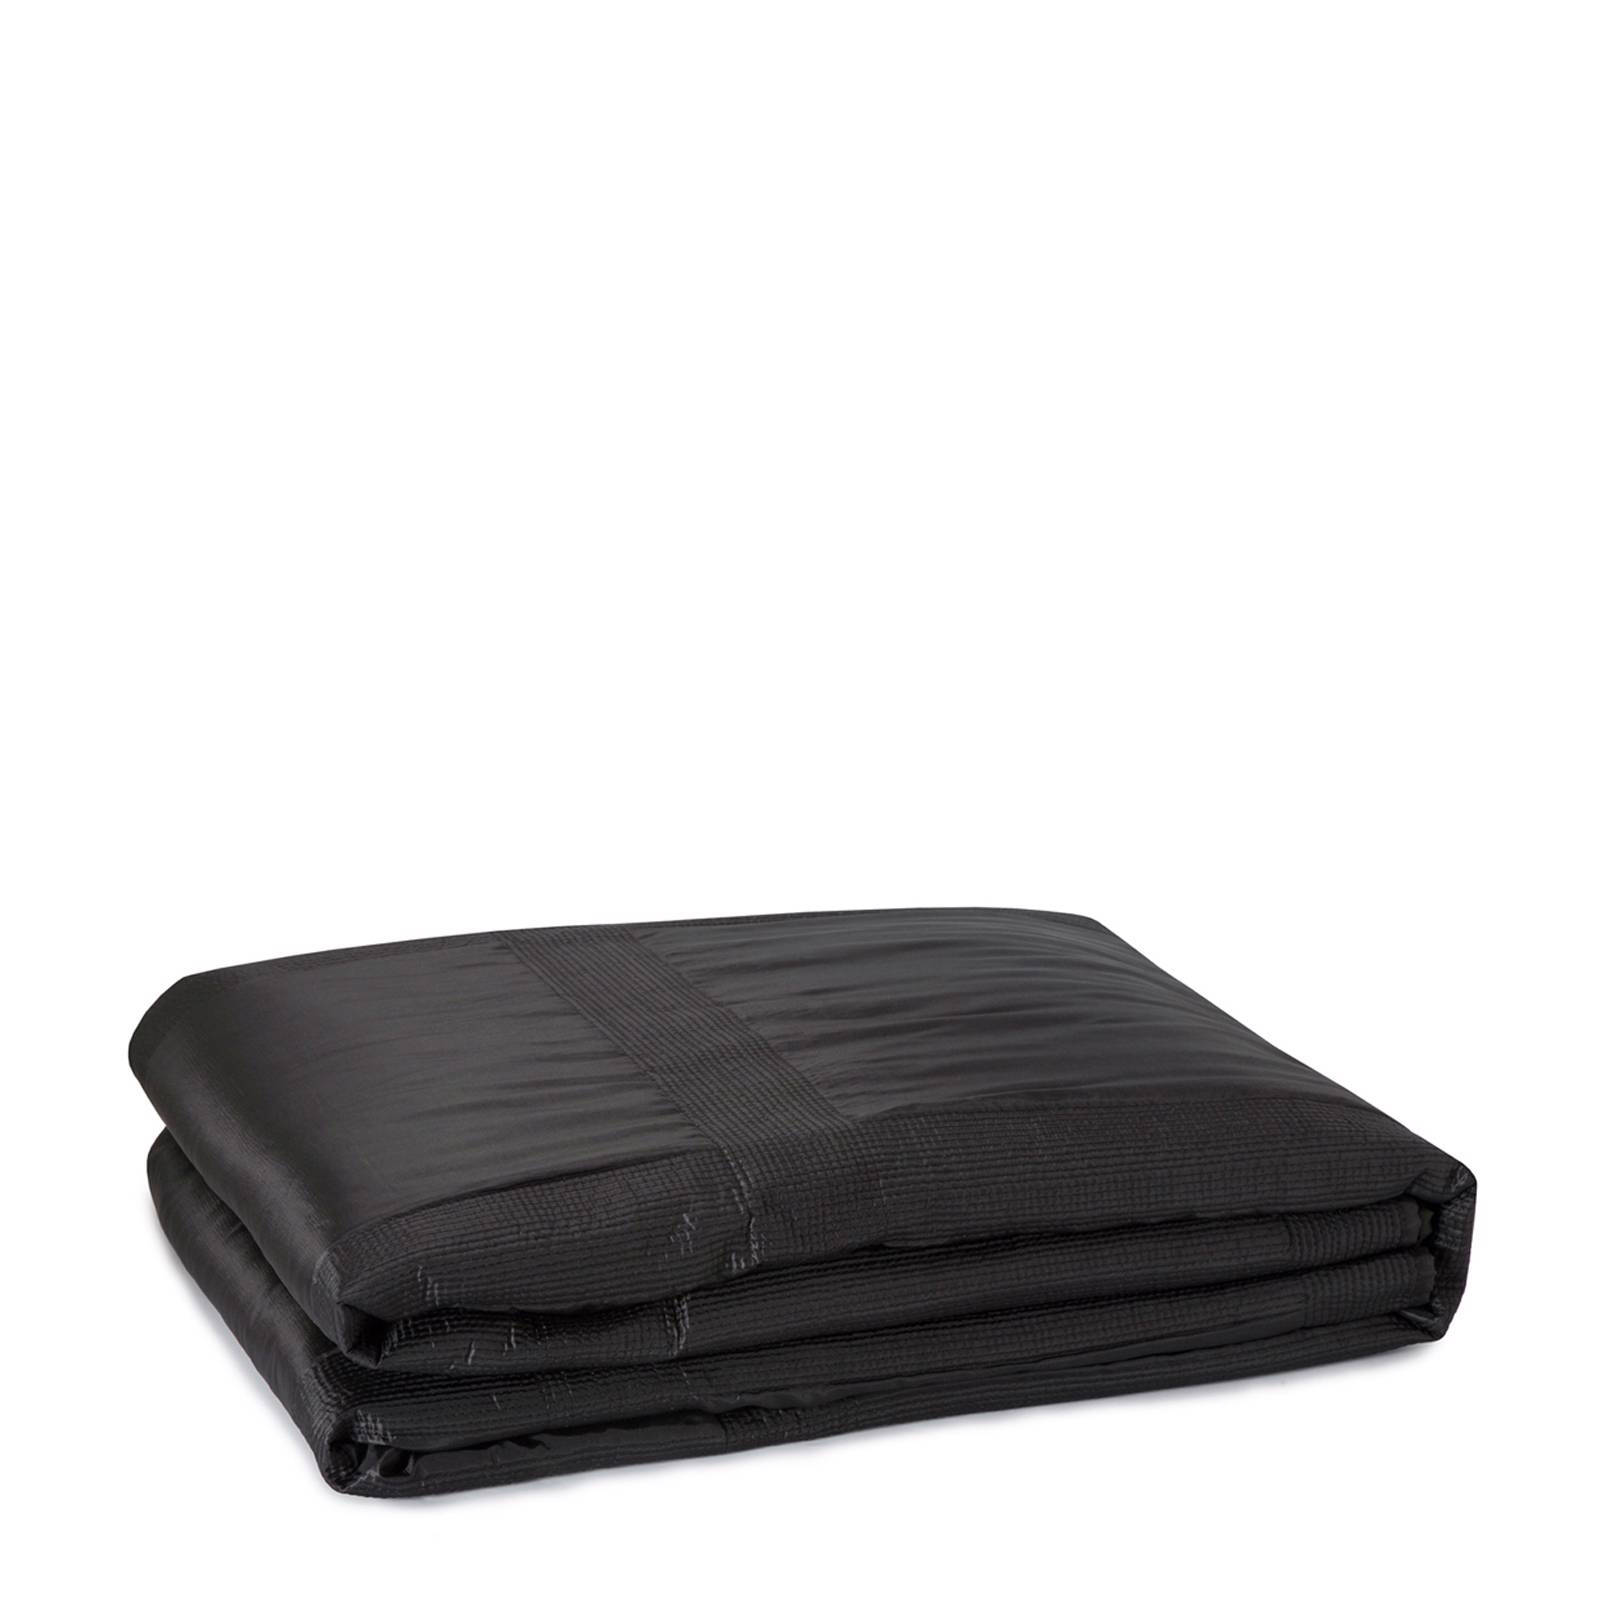 Hoeslaken Split Topper Hema Bedsprei Hema Beautiful Bedsprei Hema With Bedsprei Hema Finest